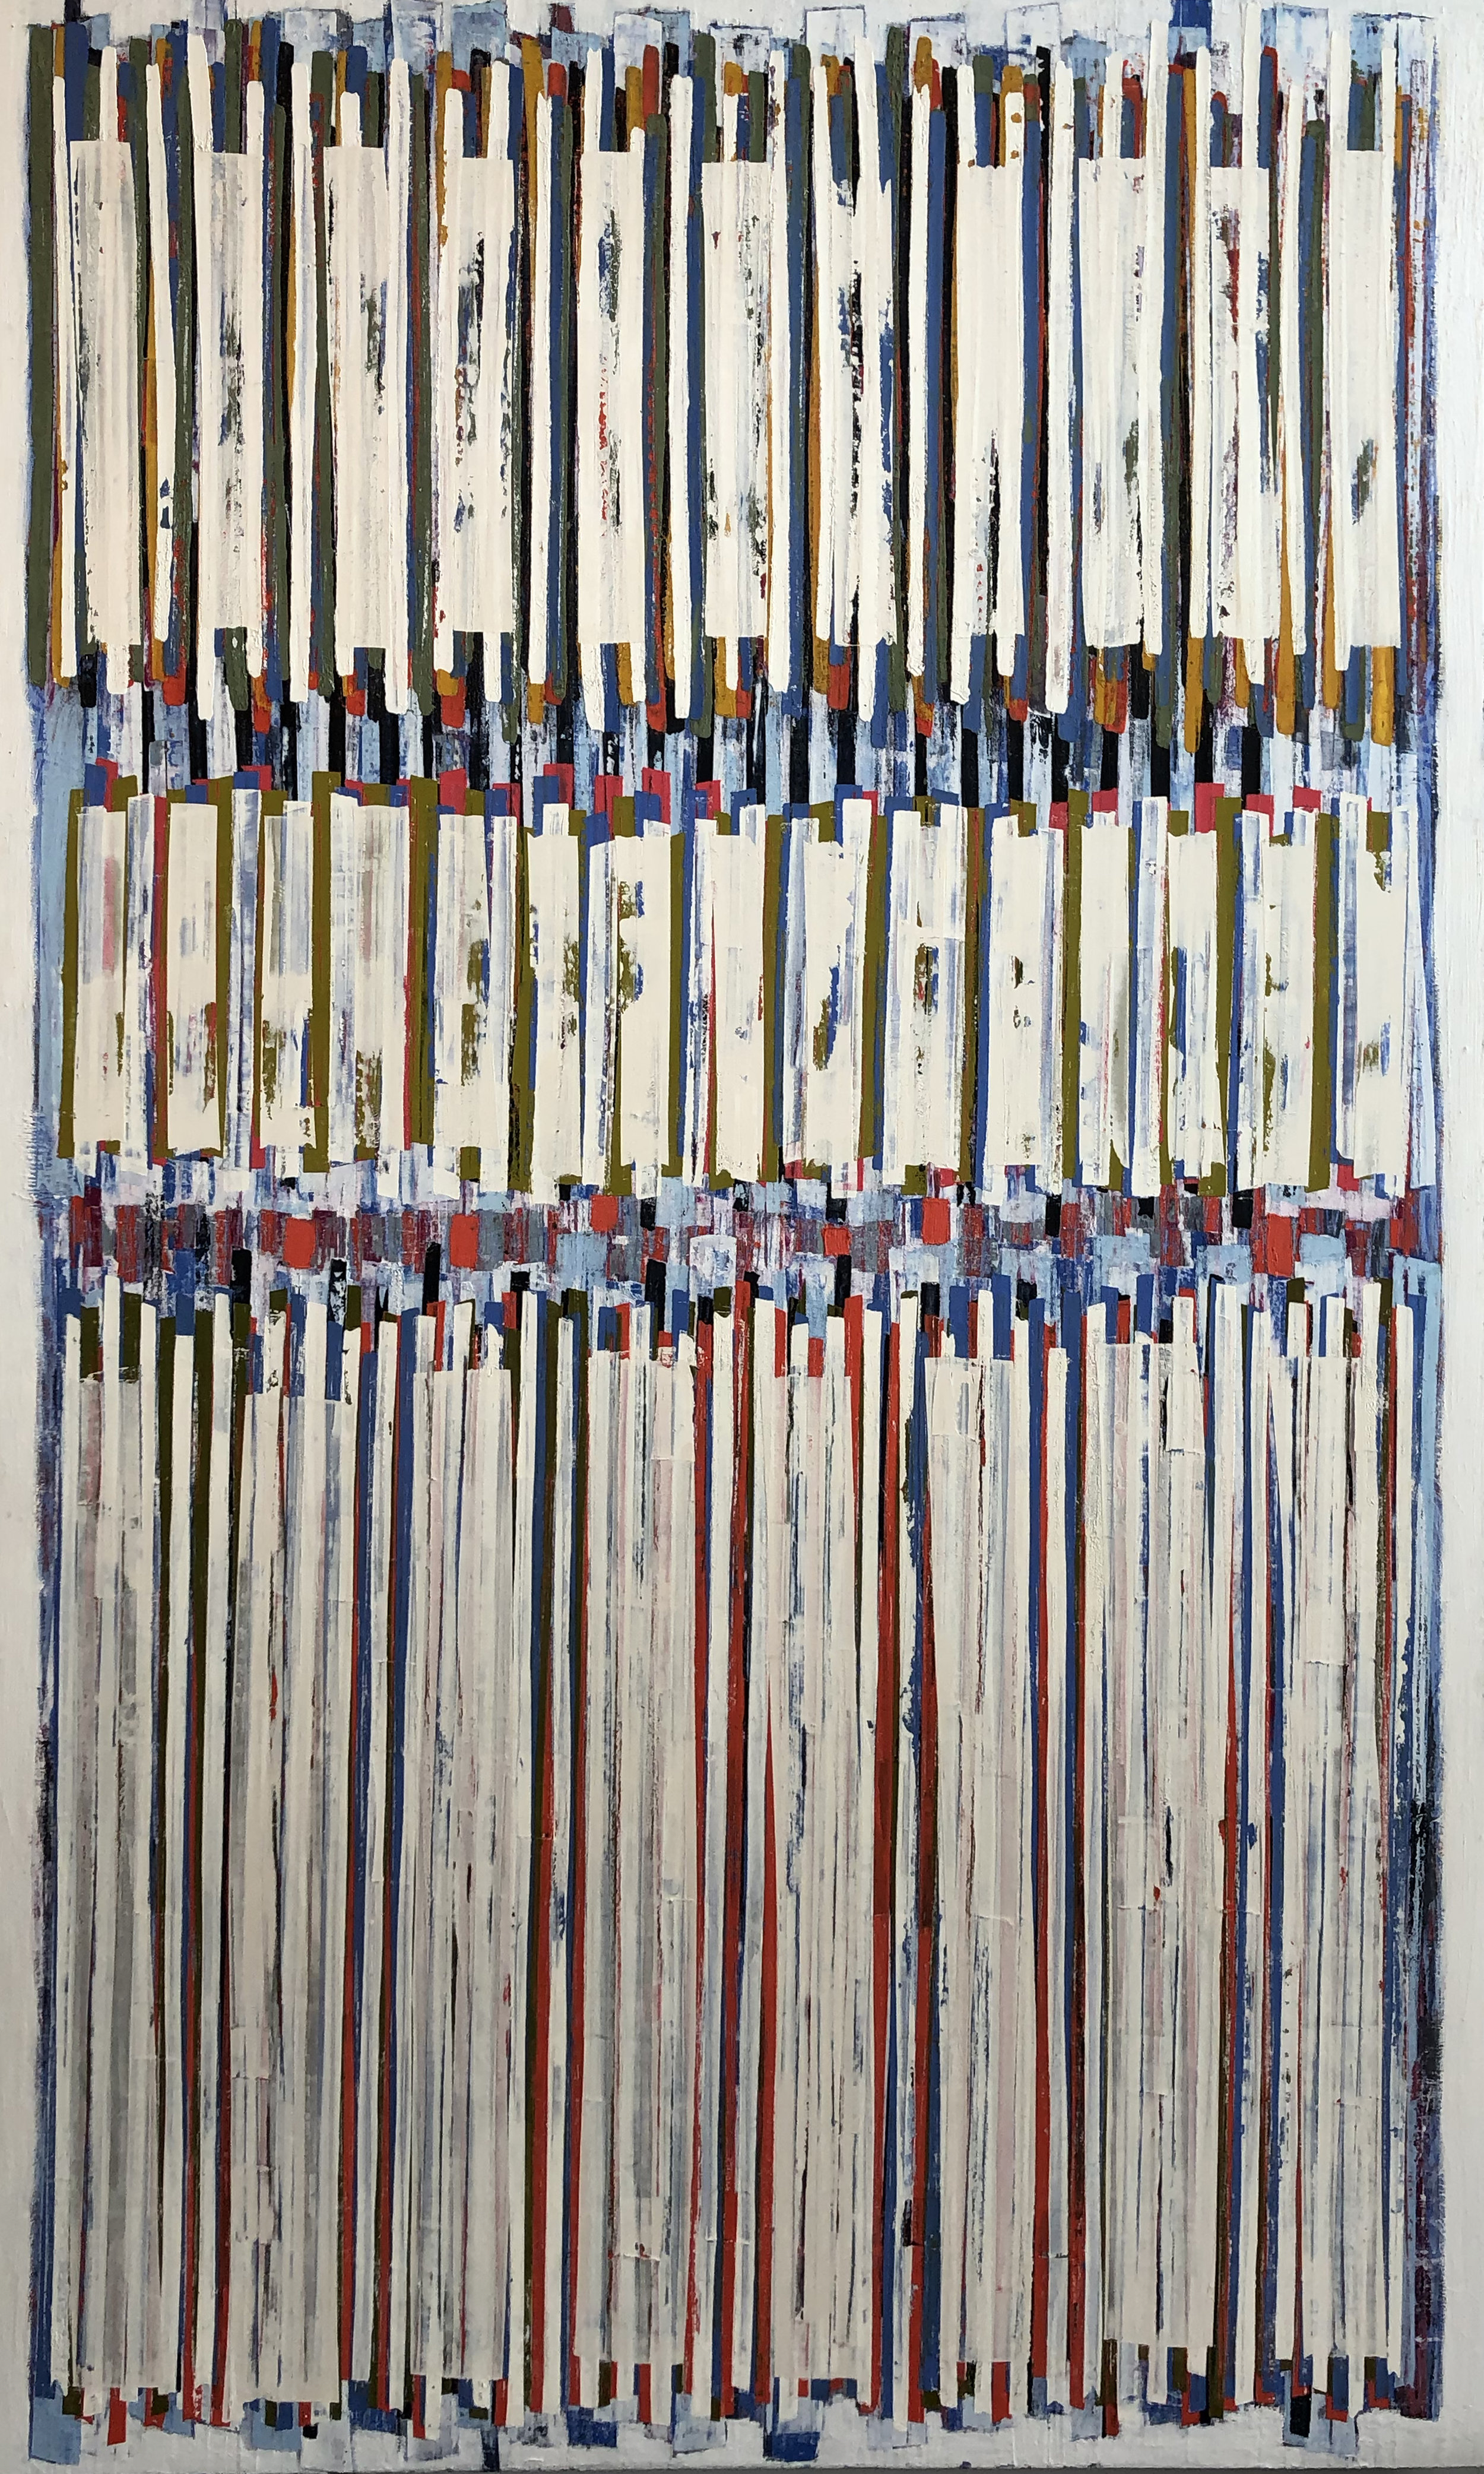 Rothko Bands by Laurie Skantzos